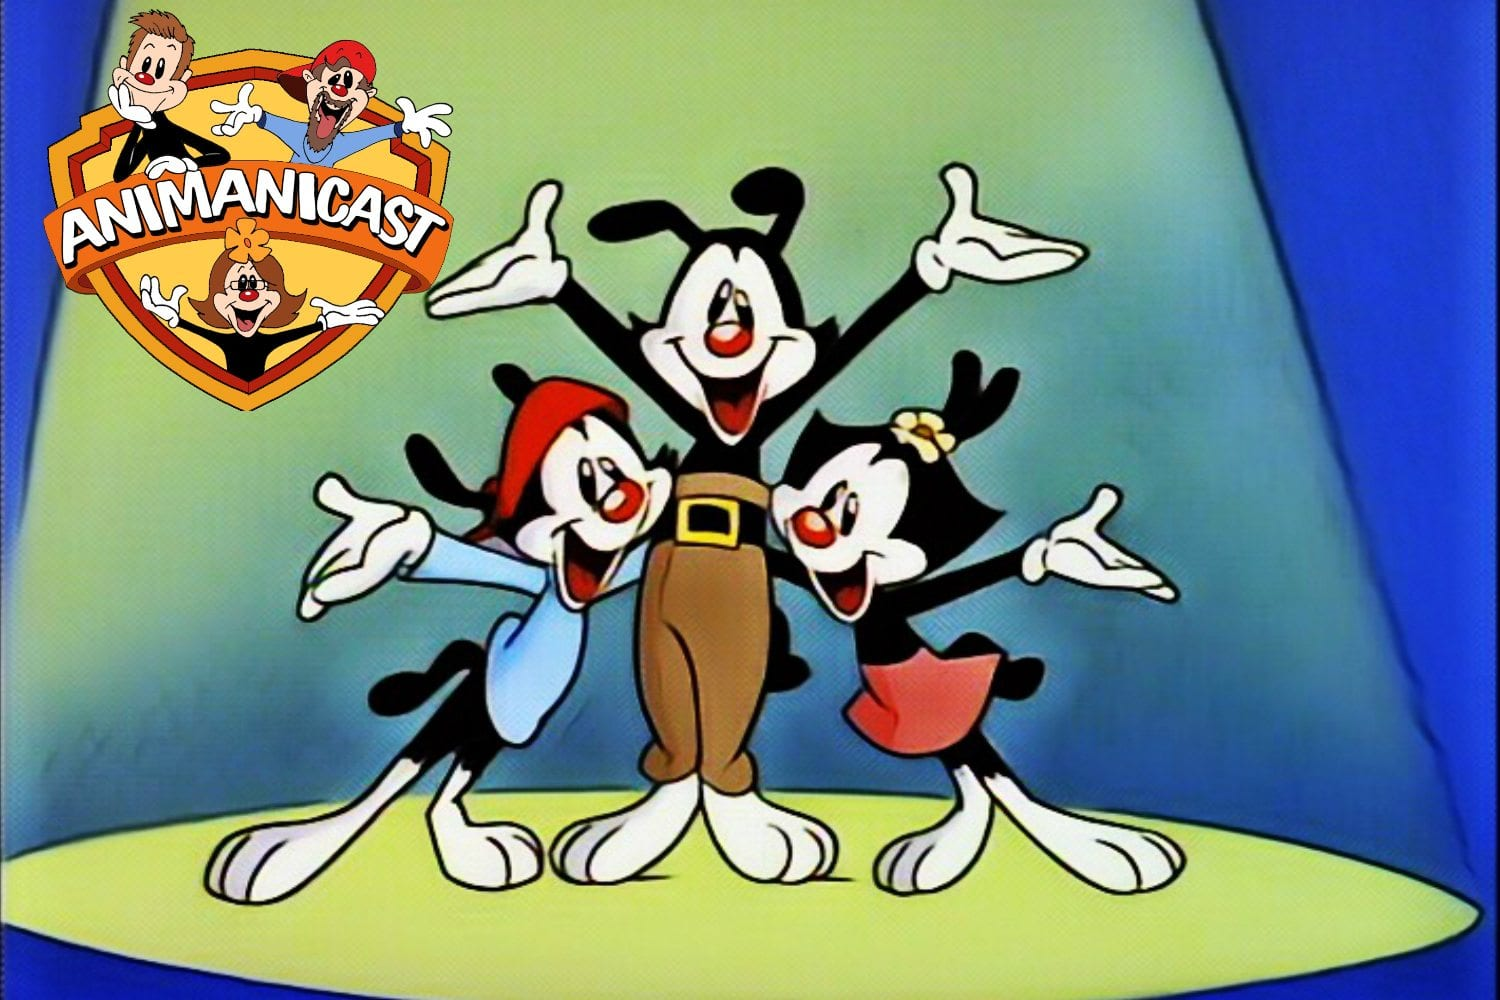 Animanicast #65a- Our Top Three Episodes of Animaniacs Season One